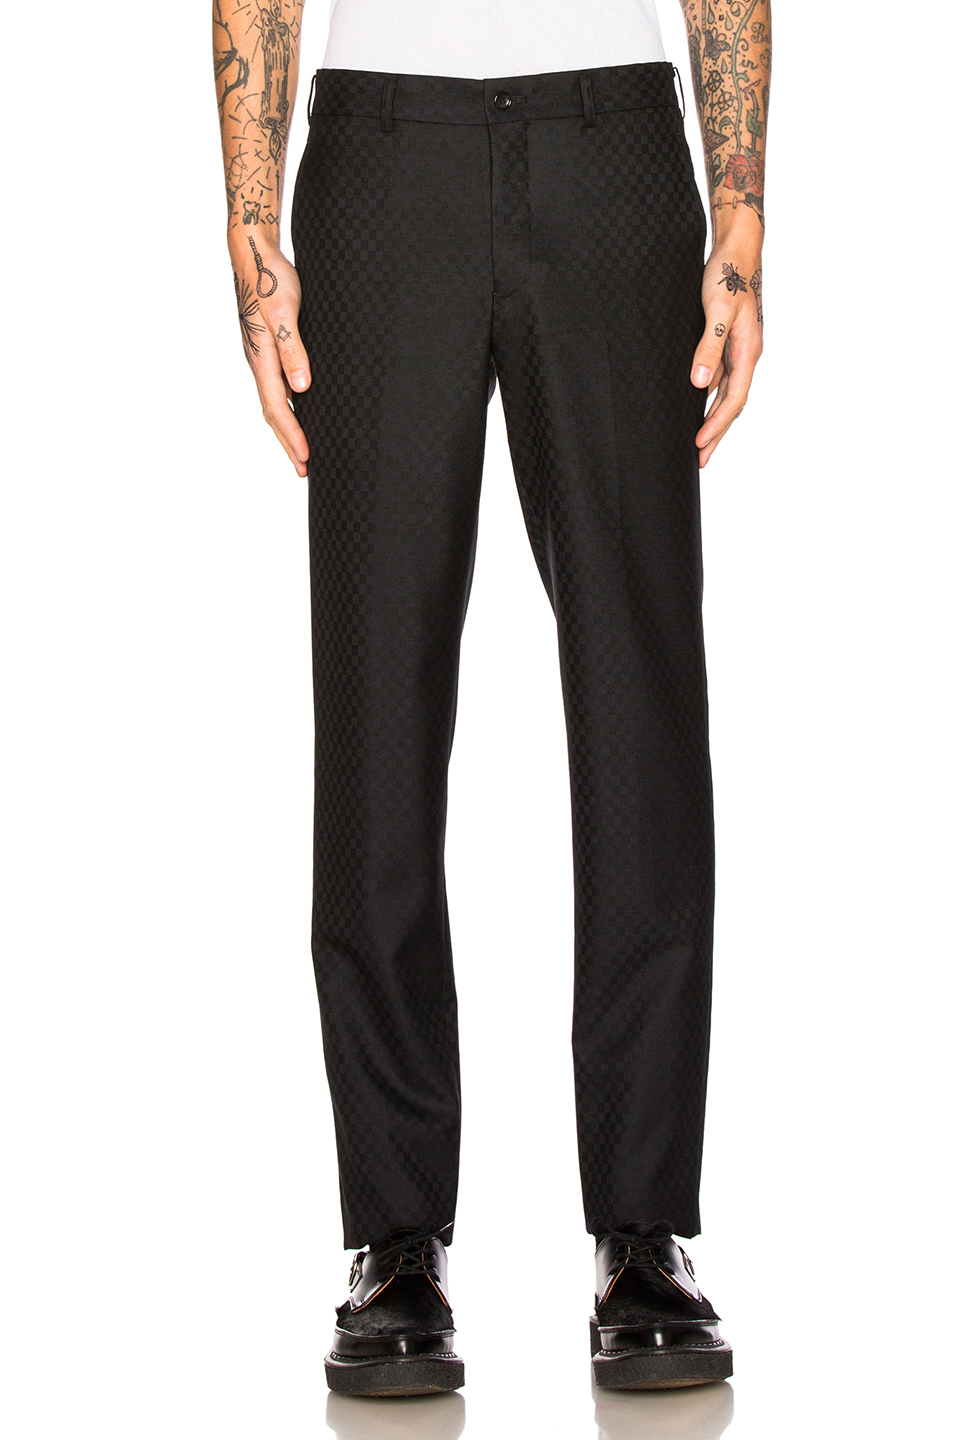 Comme Des Garcons Homme Plus Wool & Silk Trousers in Black,Checkered & Plaid